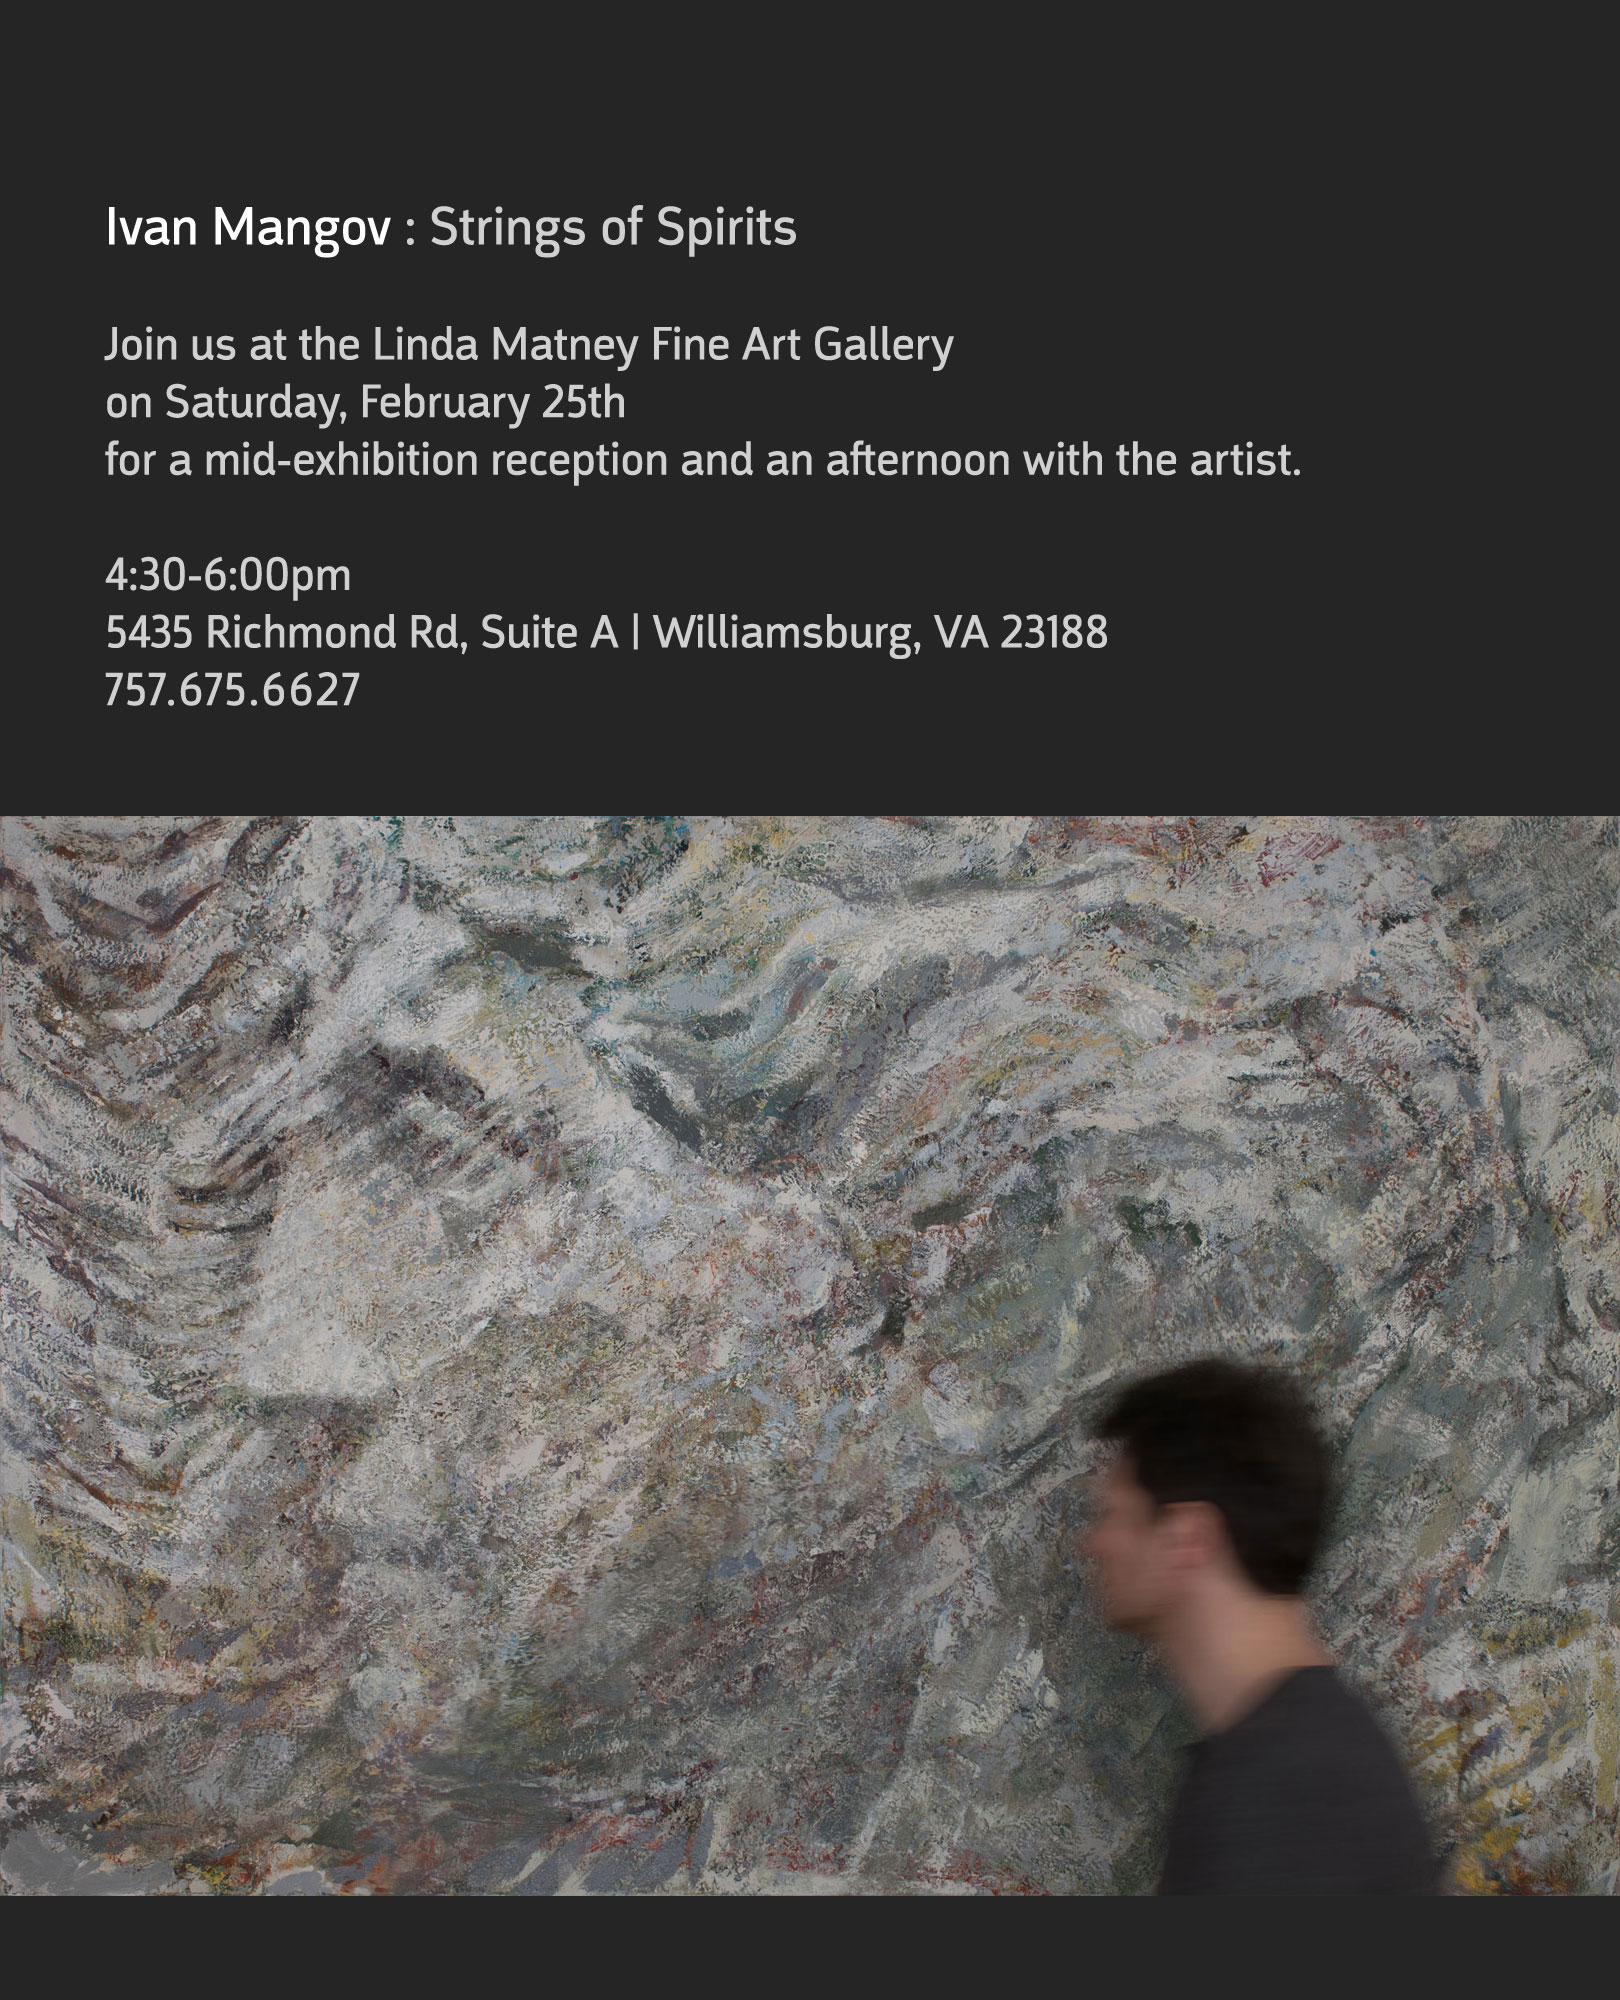 An mid-exhibition reception and afternoon with Ivan Mangov, 2/25/17, 4:30-6pm